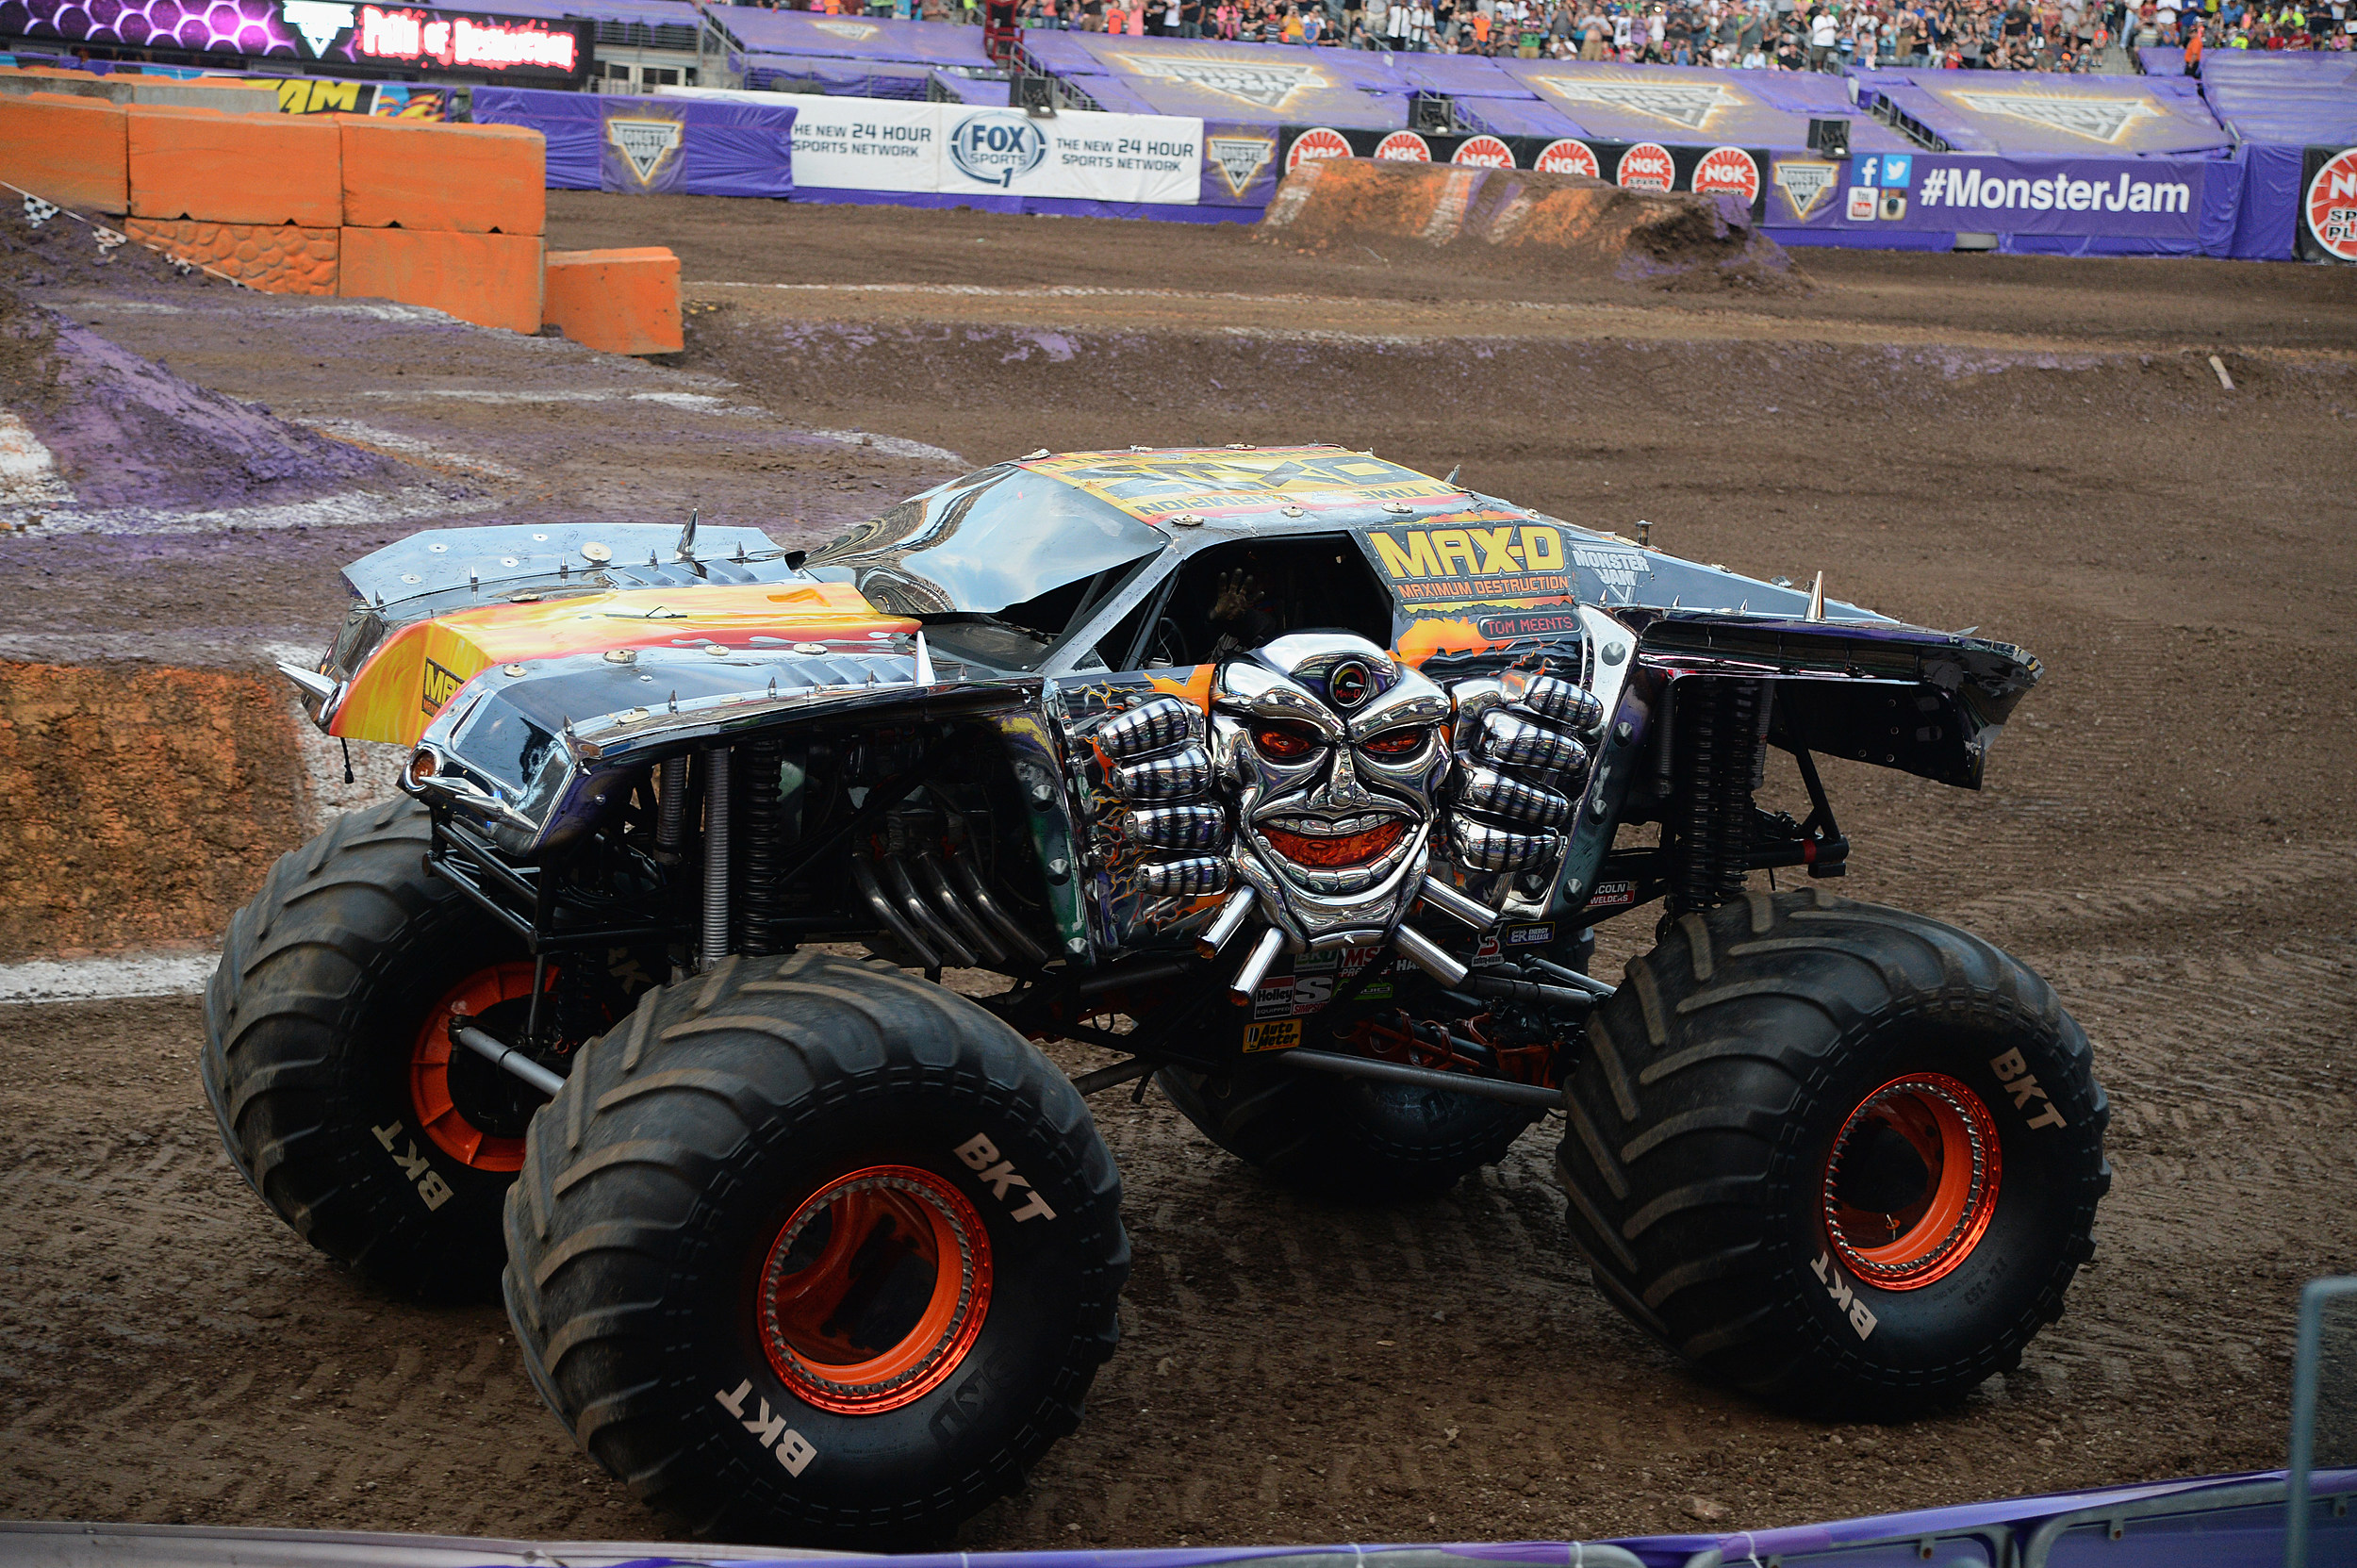 World Champion Tom Meents Attempts A Never-Before-Done Front Flip Of His Monster Truck